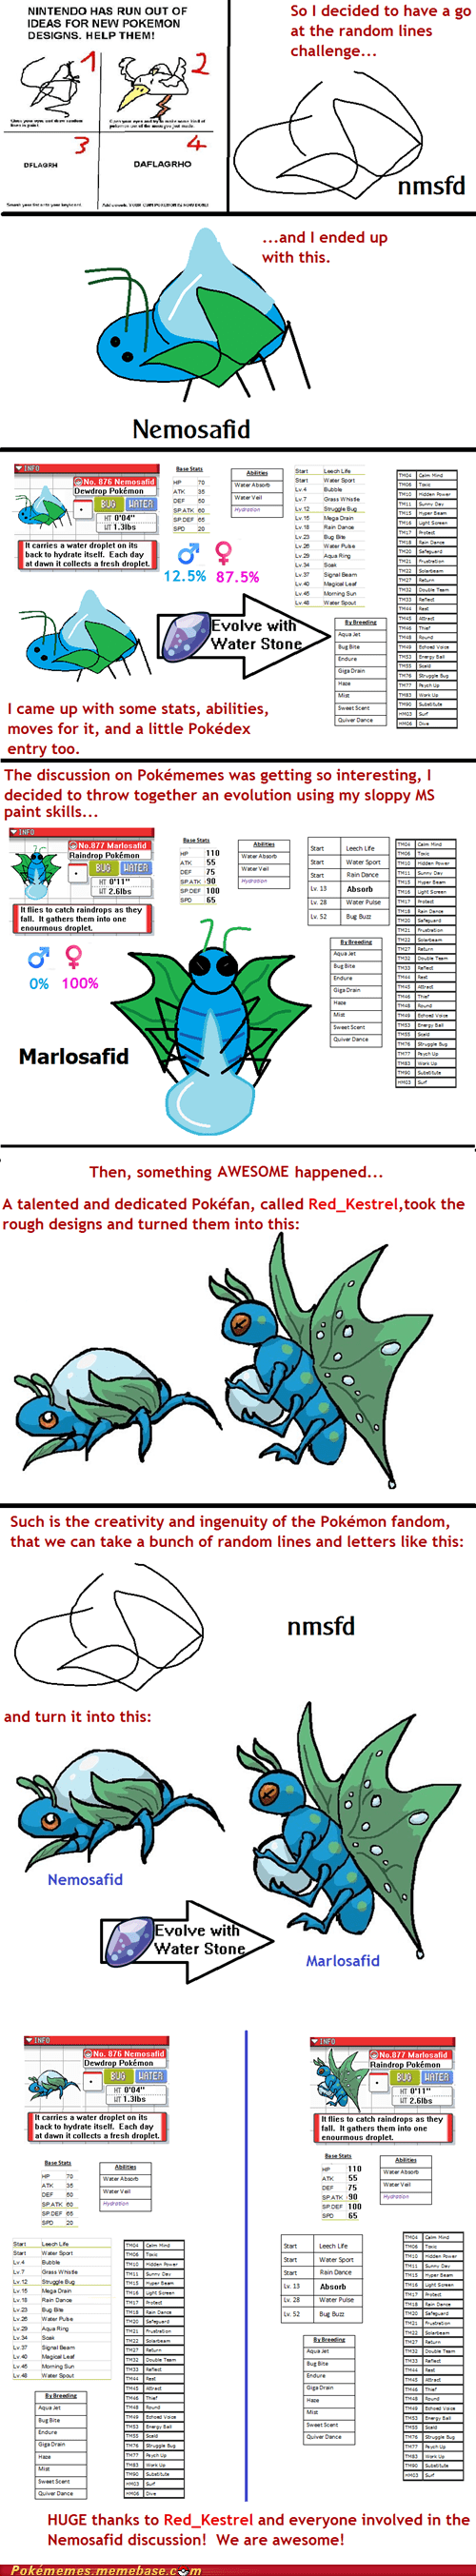 new pokemon Pokémon Pokémemes amazing - 7429241088